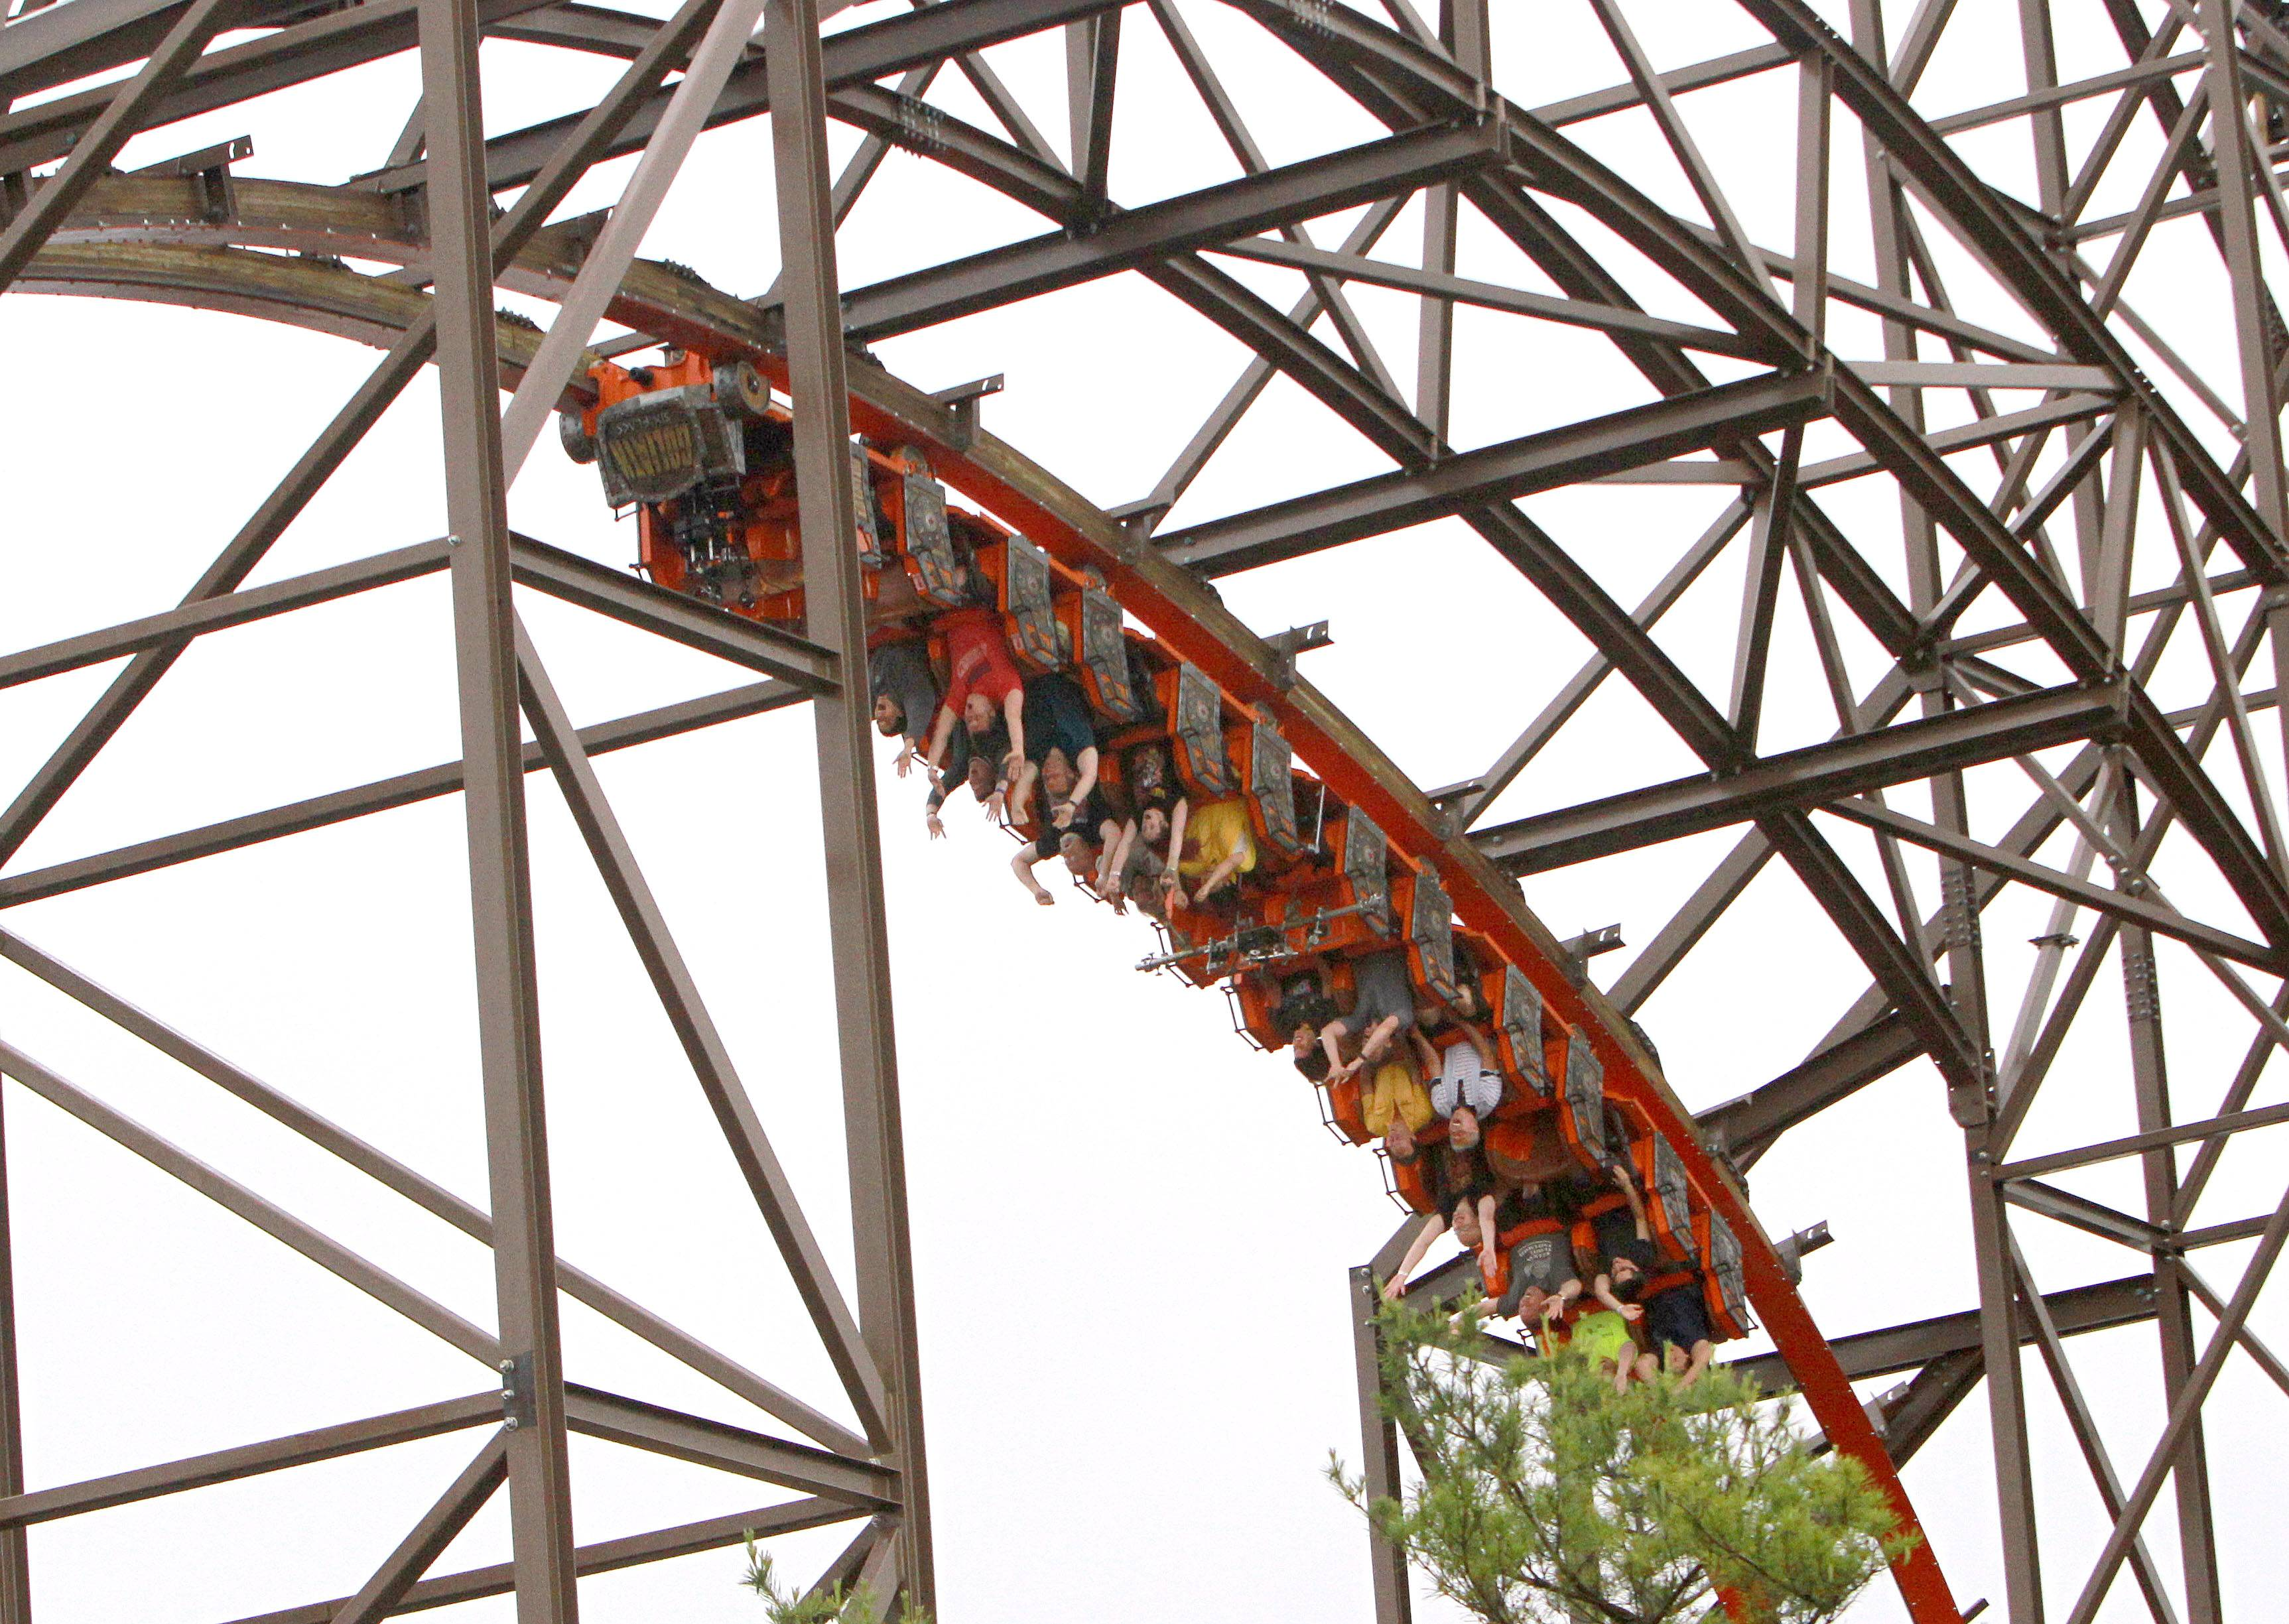 Goliath is the only wooden roller coaster to feature inversions. Six Flags Great America hosted a special preview of the ride Wednesday in Gurnee.